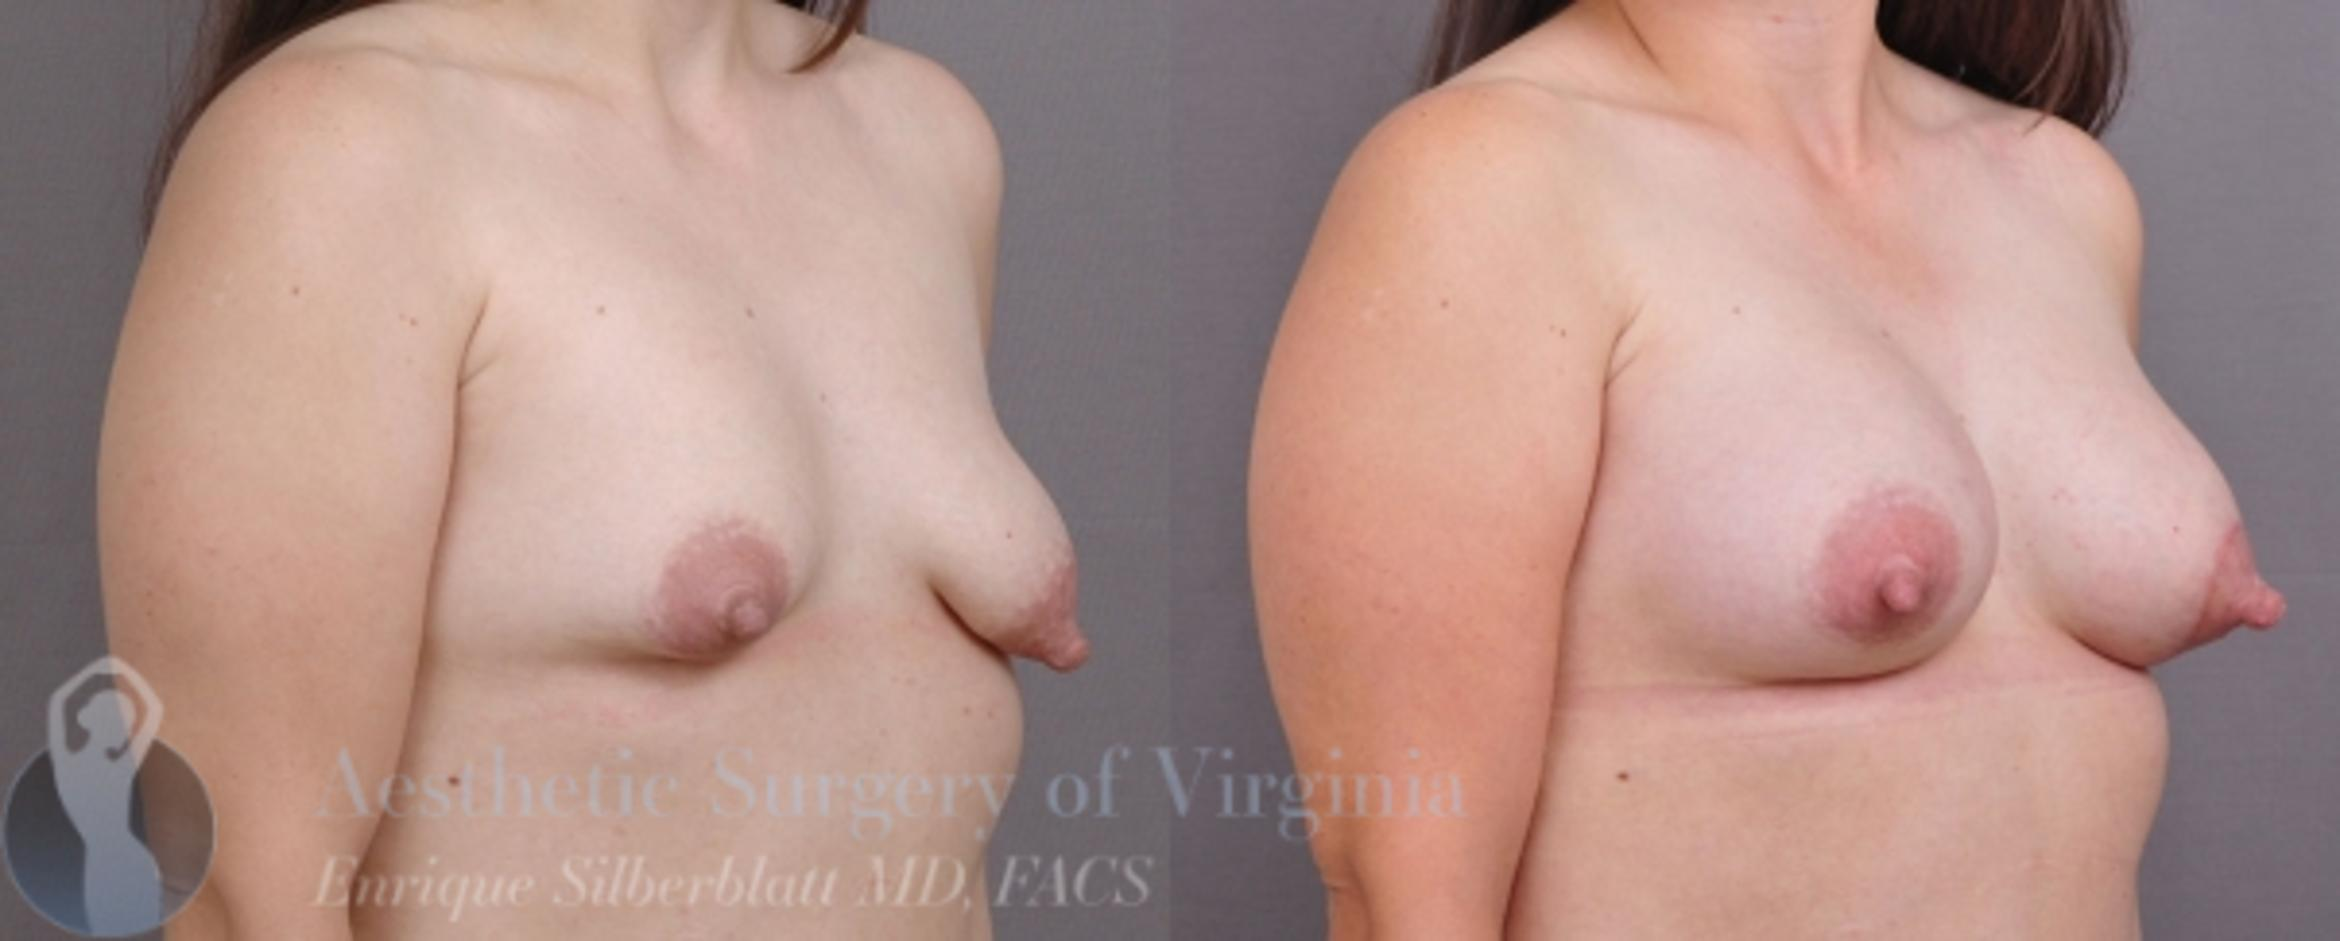 Breast Augmentation Case 17 Before & After View #3 | Roanoke, VA | Aesthetic Surgery of Virginia: Enrique Silberblatt, MD